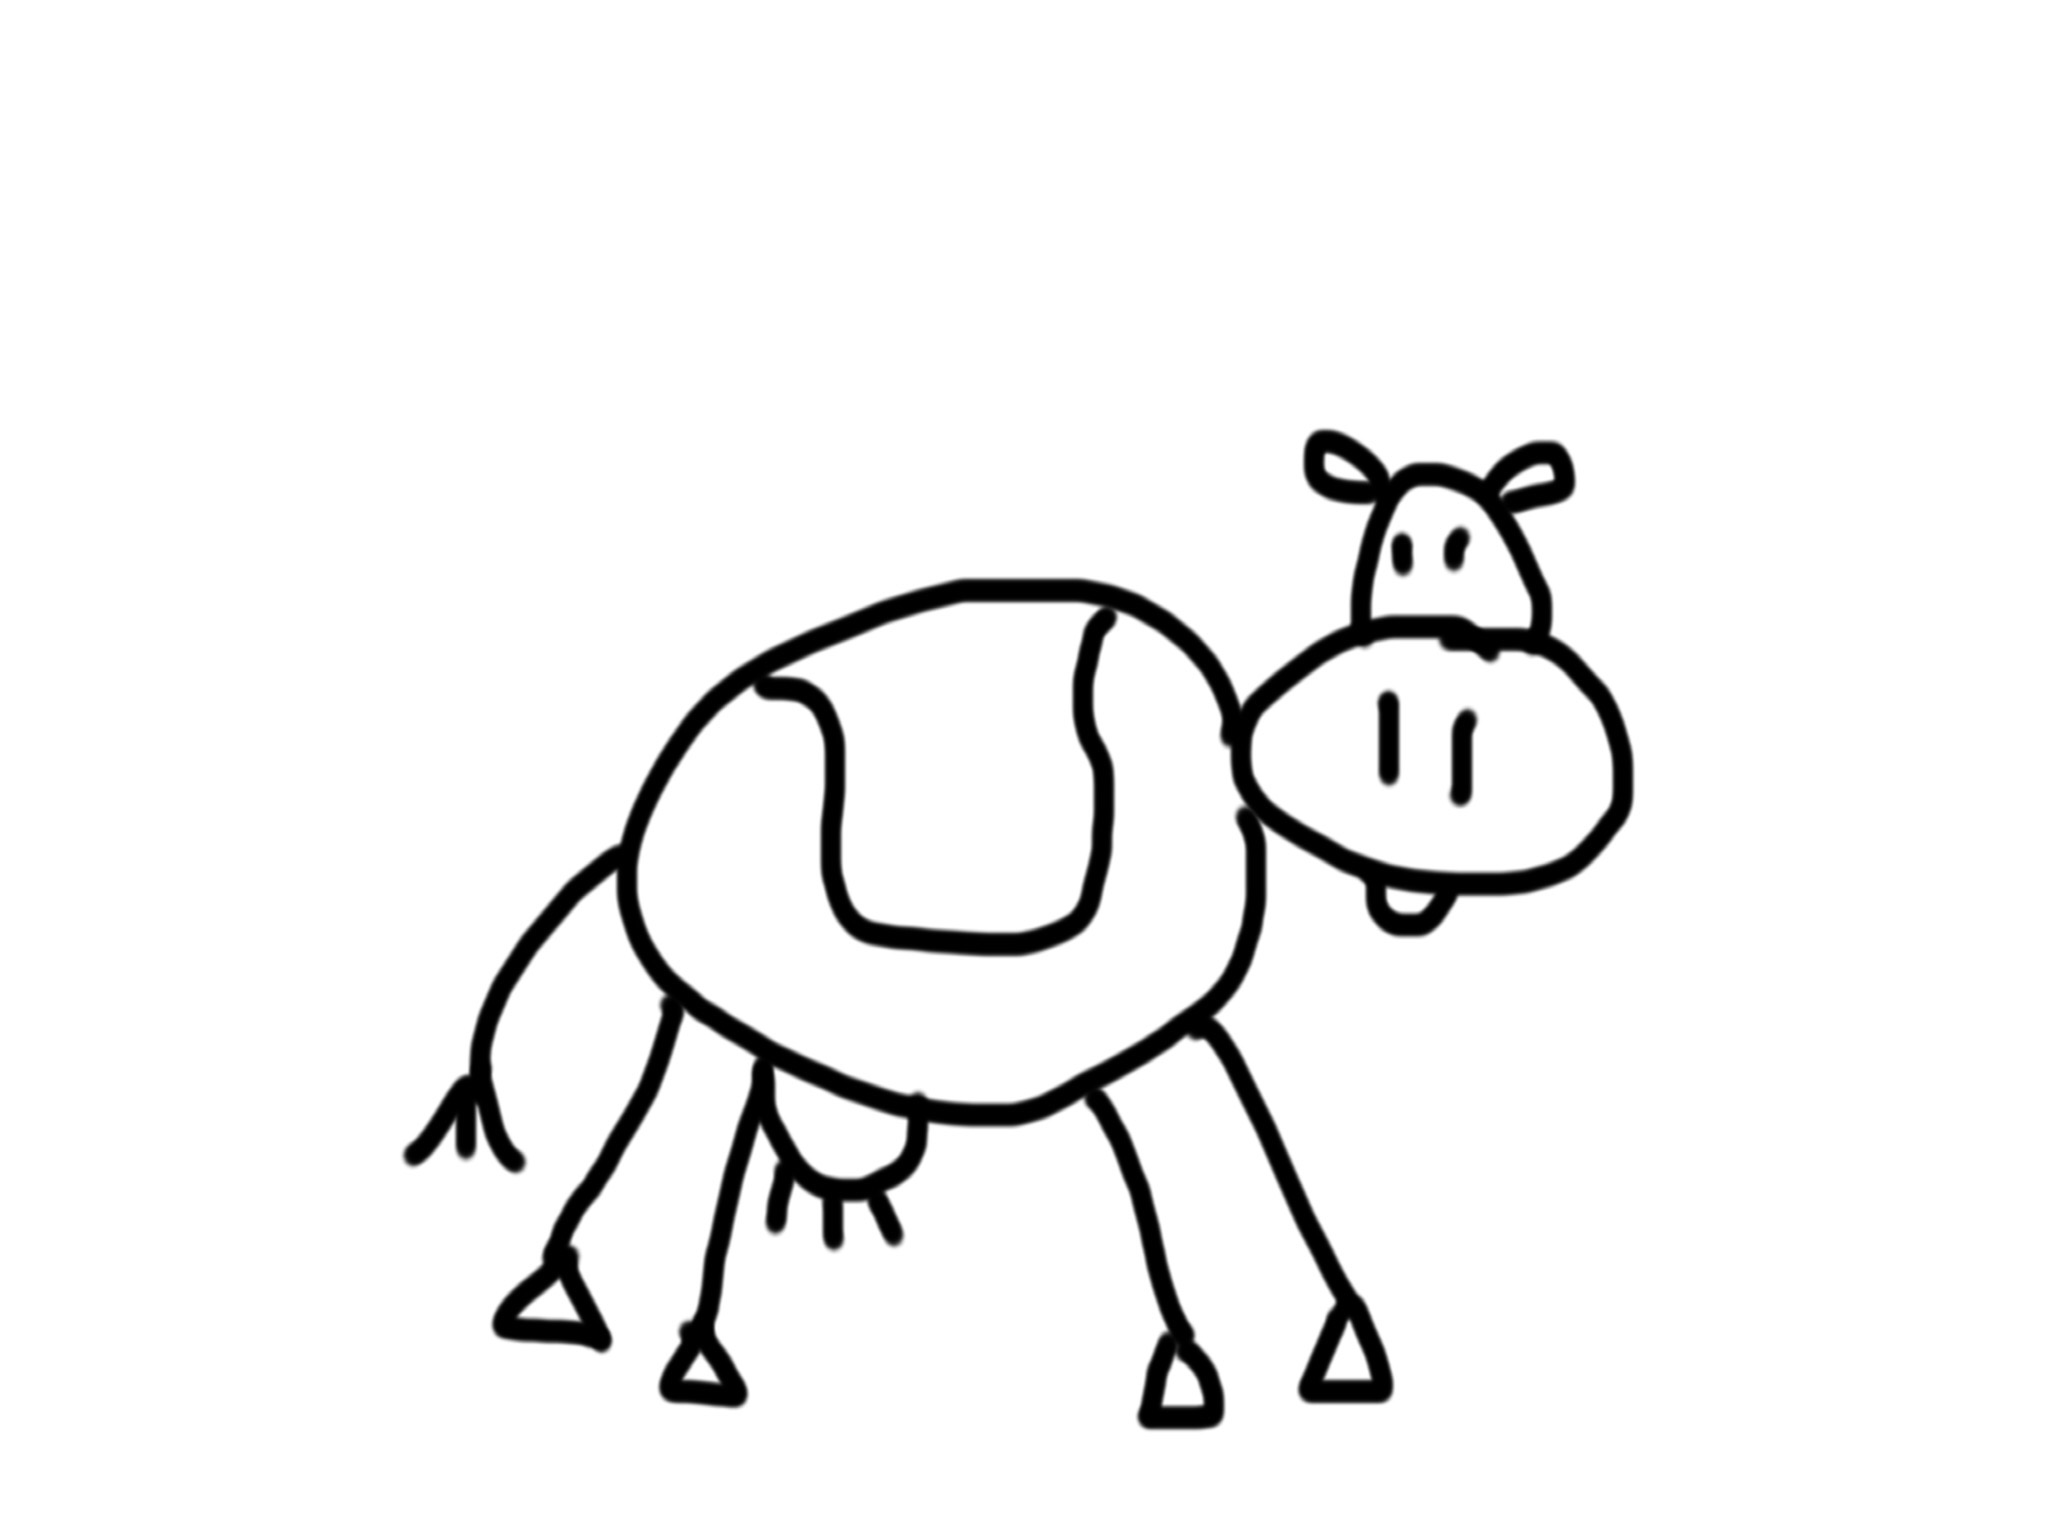 2048x1536 Steve From Blue's Clues Taught Me To Draw A Cow (And More